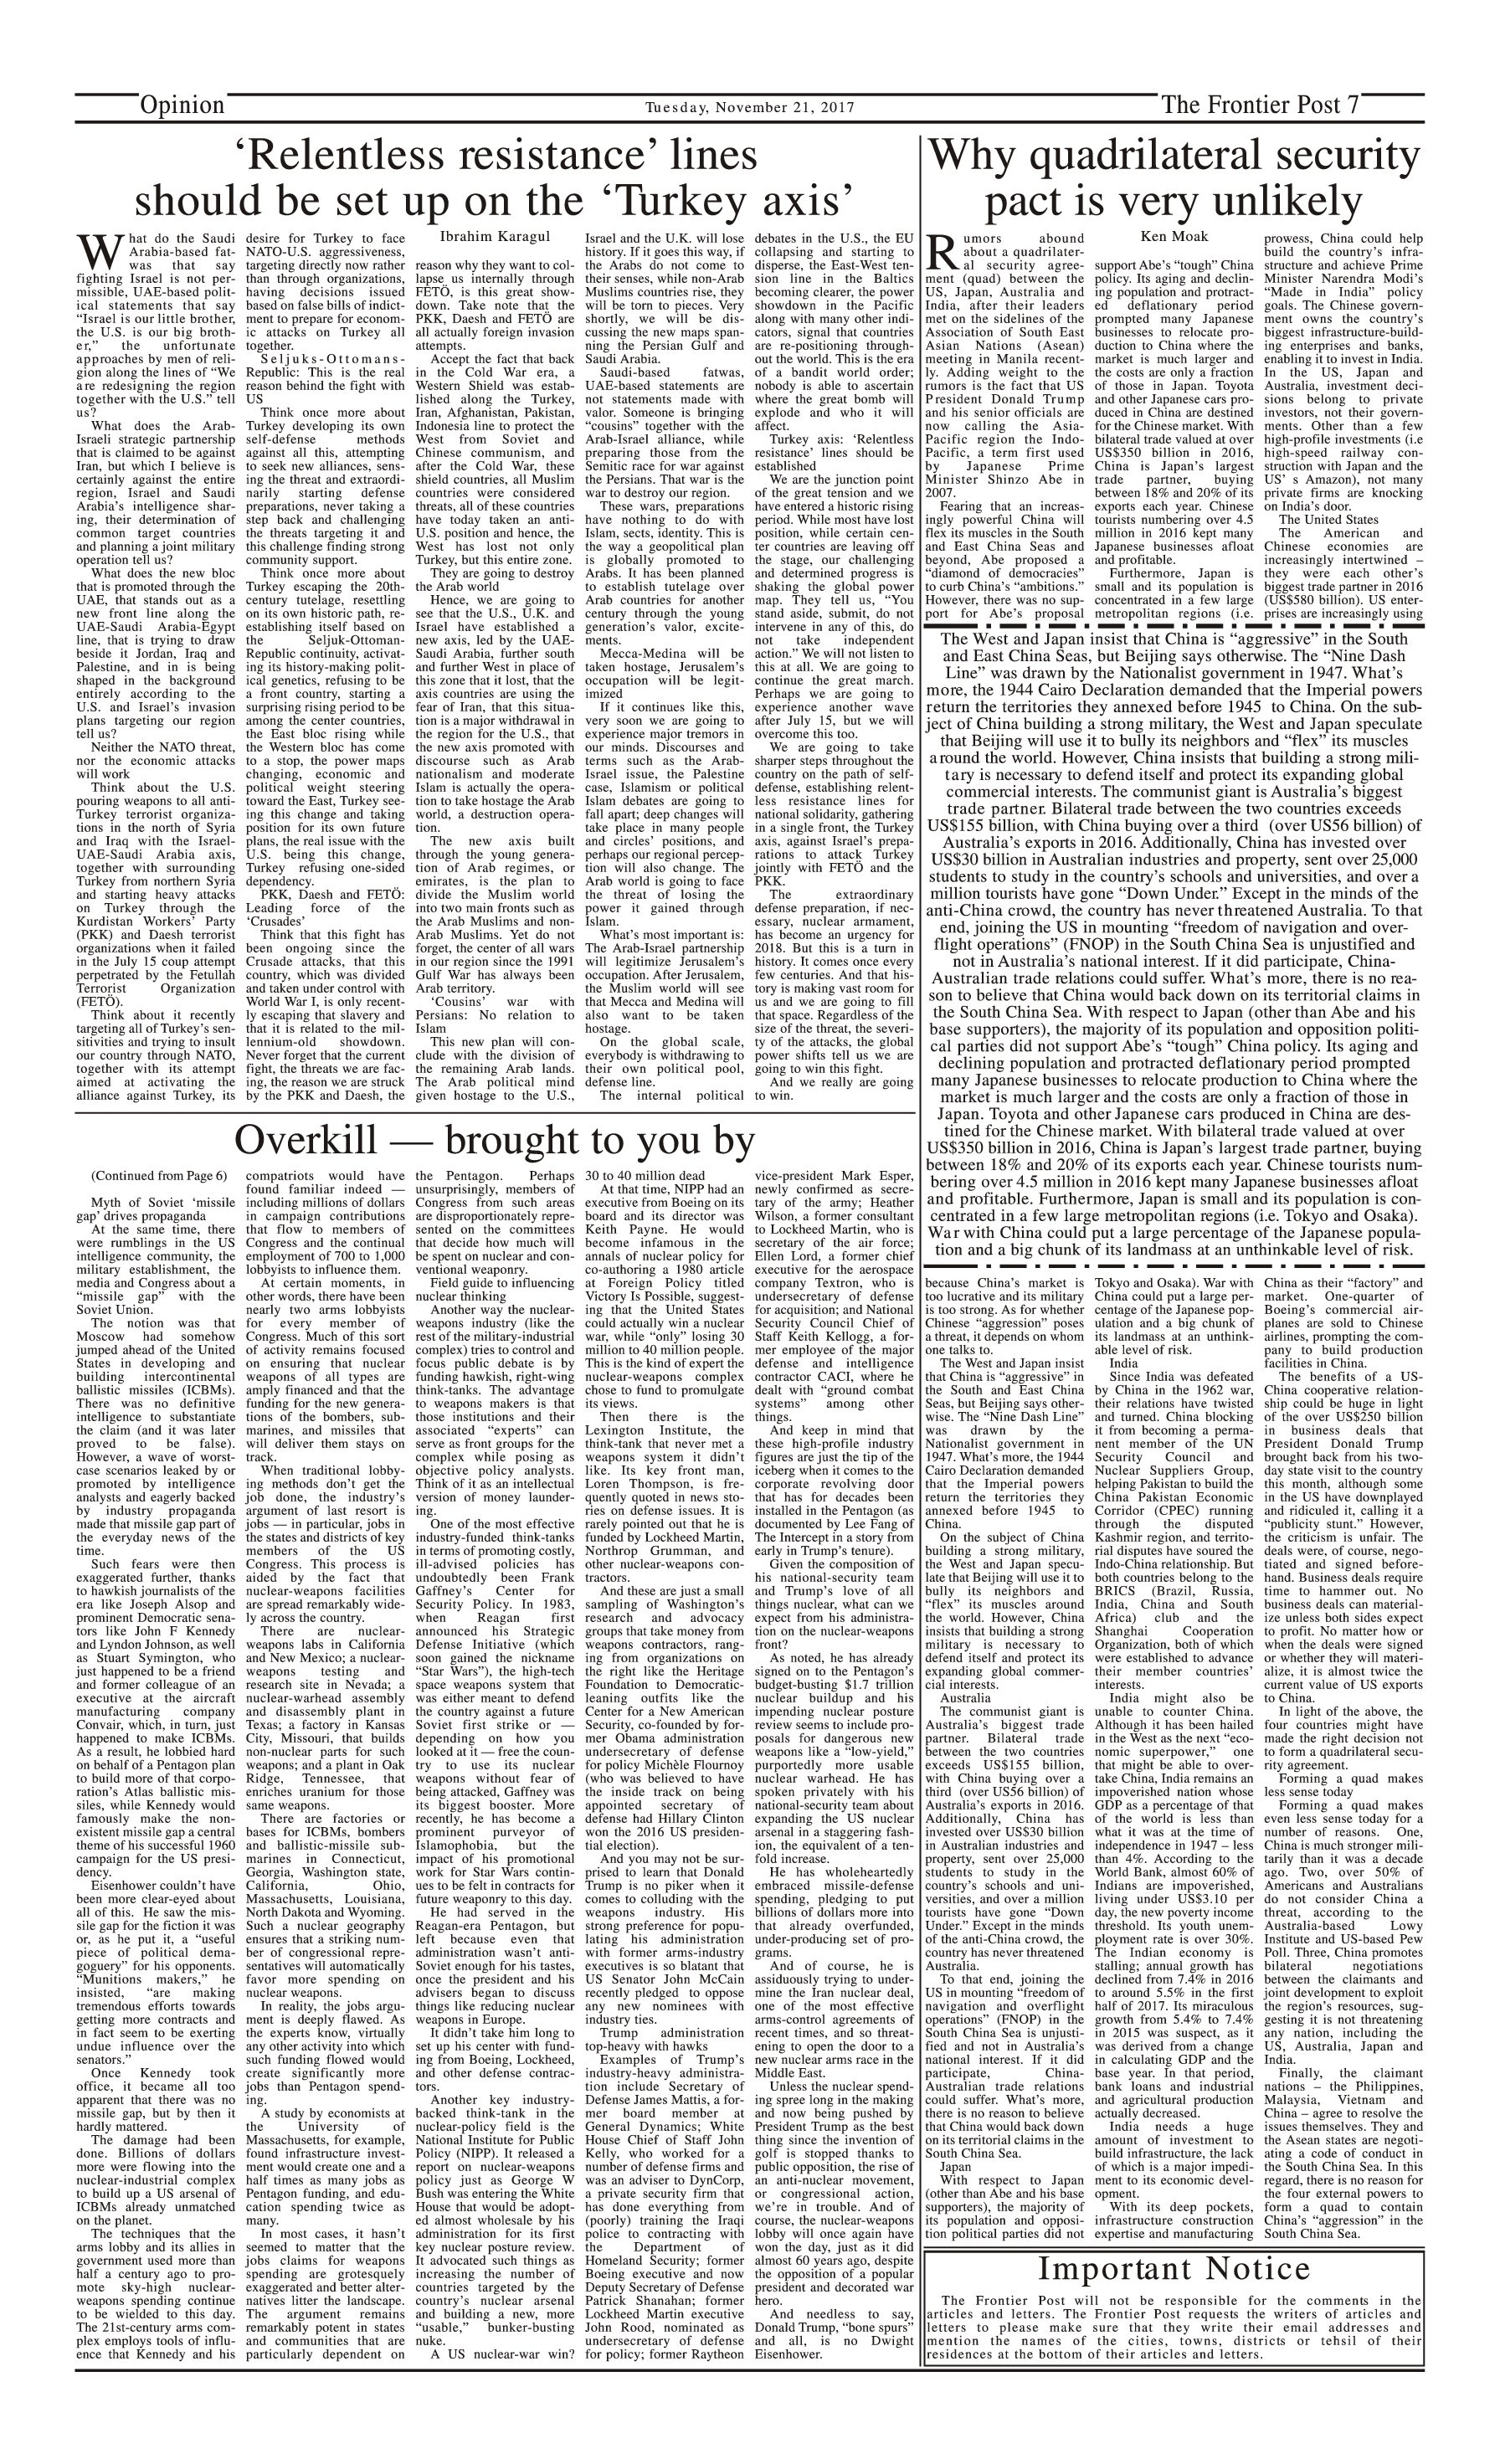 Opinion Page 21-11